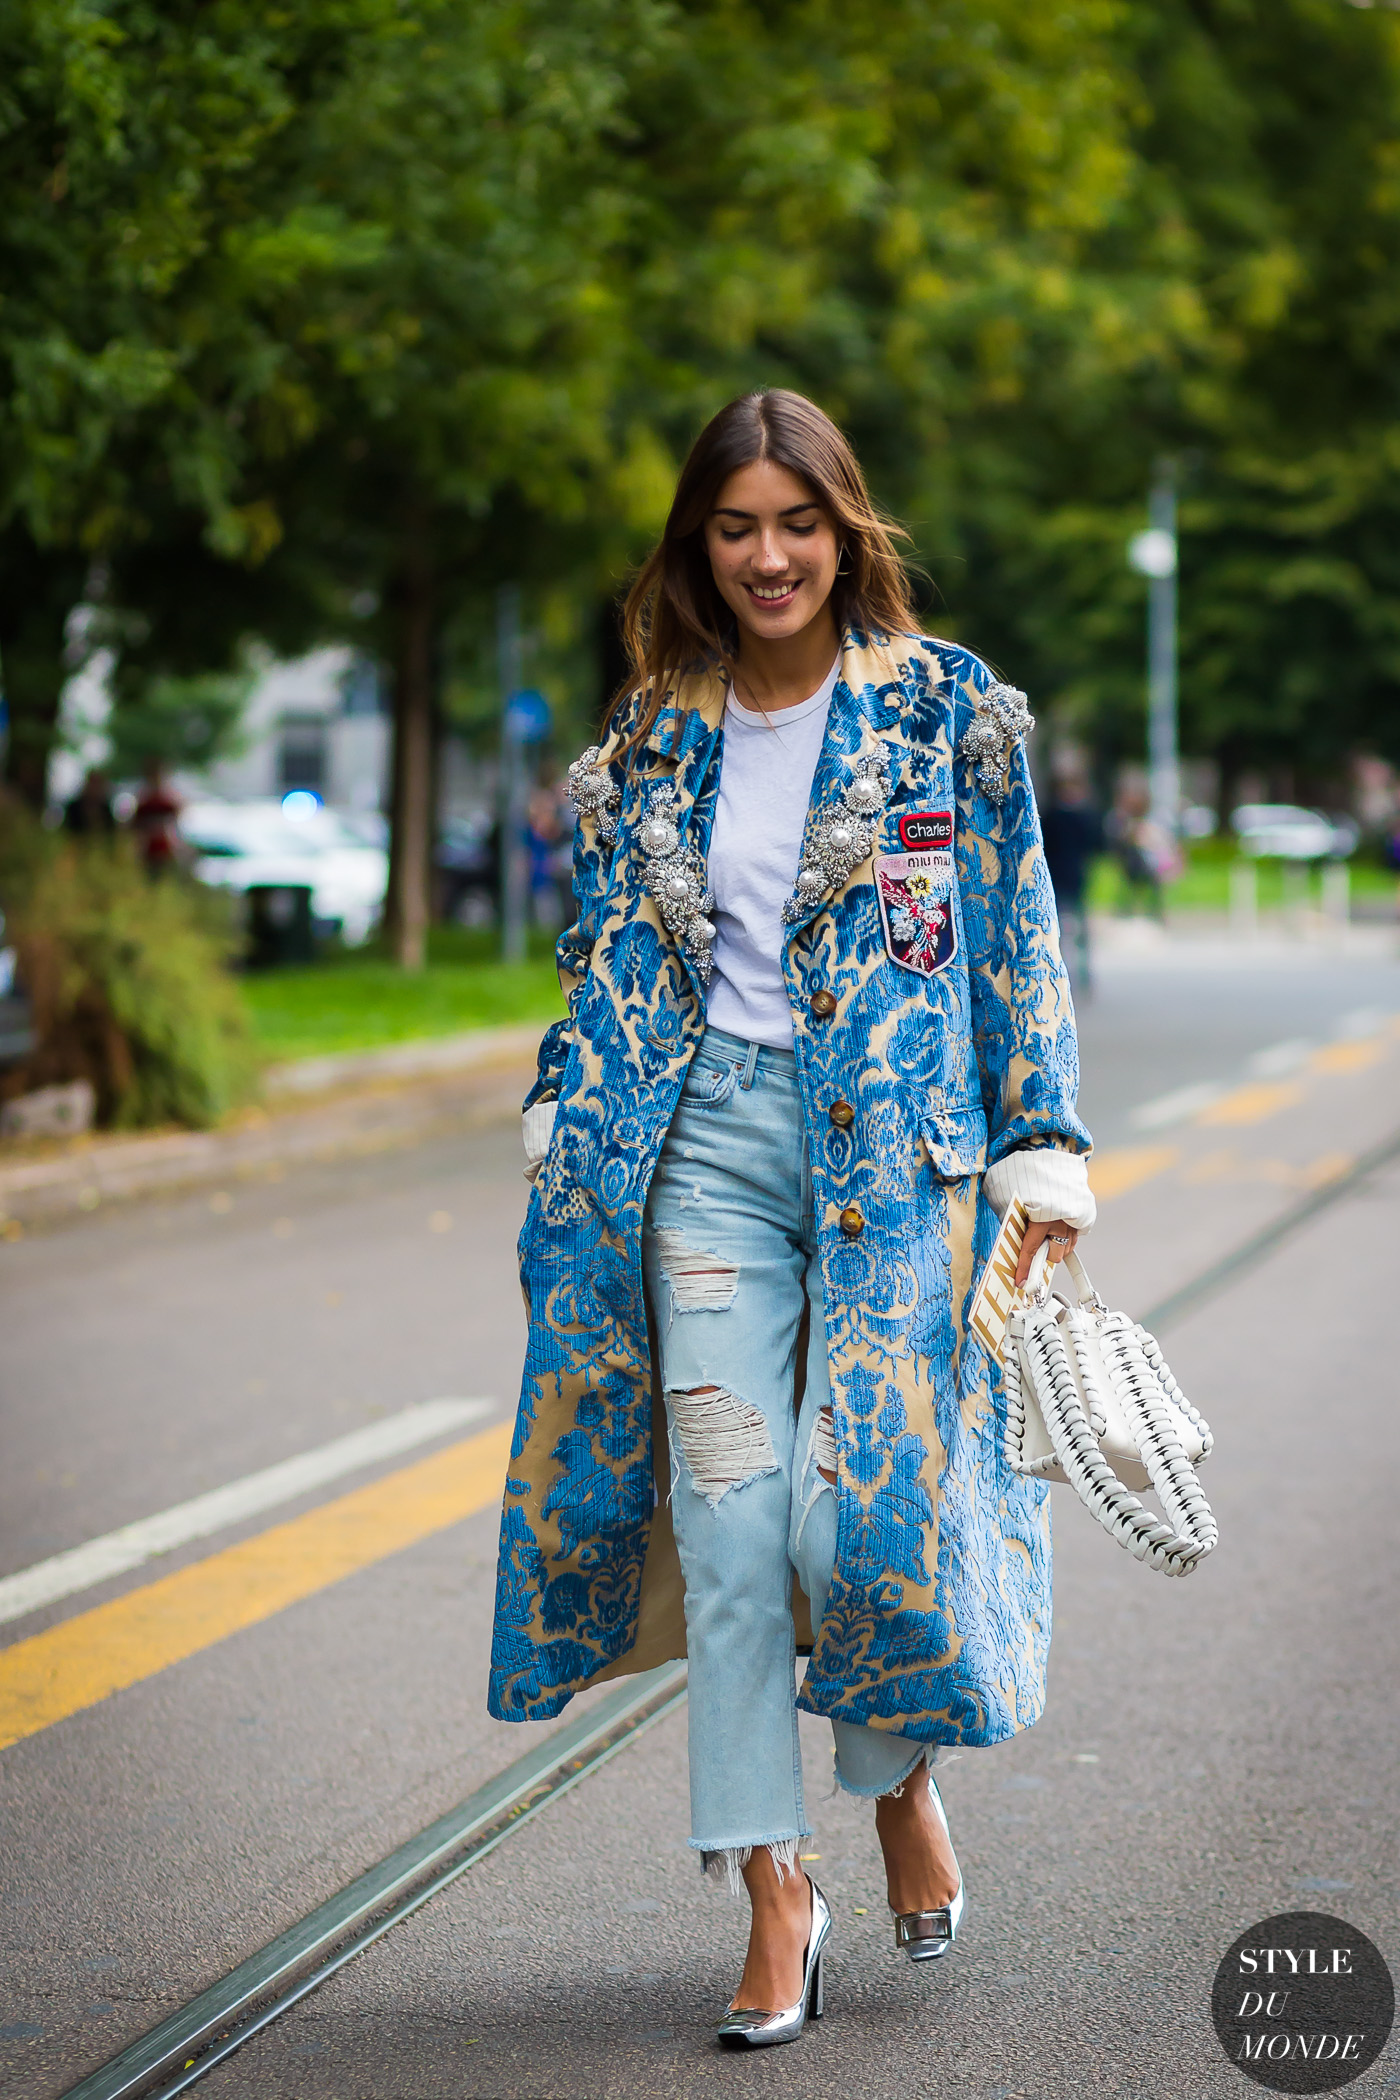 patricia-manfield-milan-ss17-by-styledumonde-street-style-fashion-photography